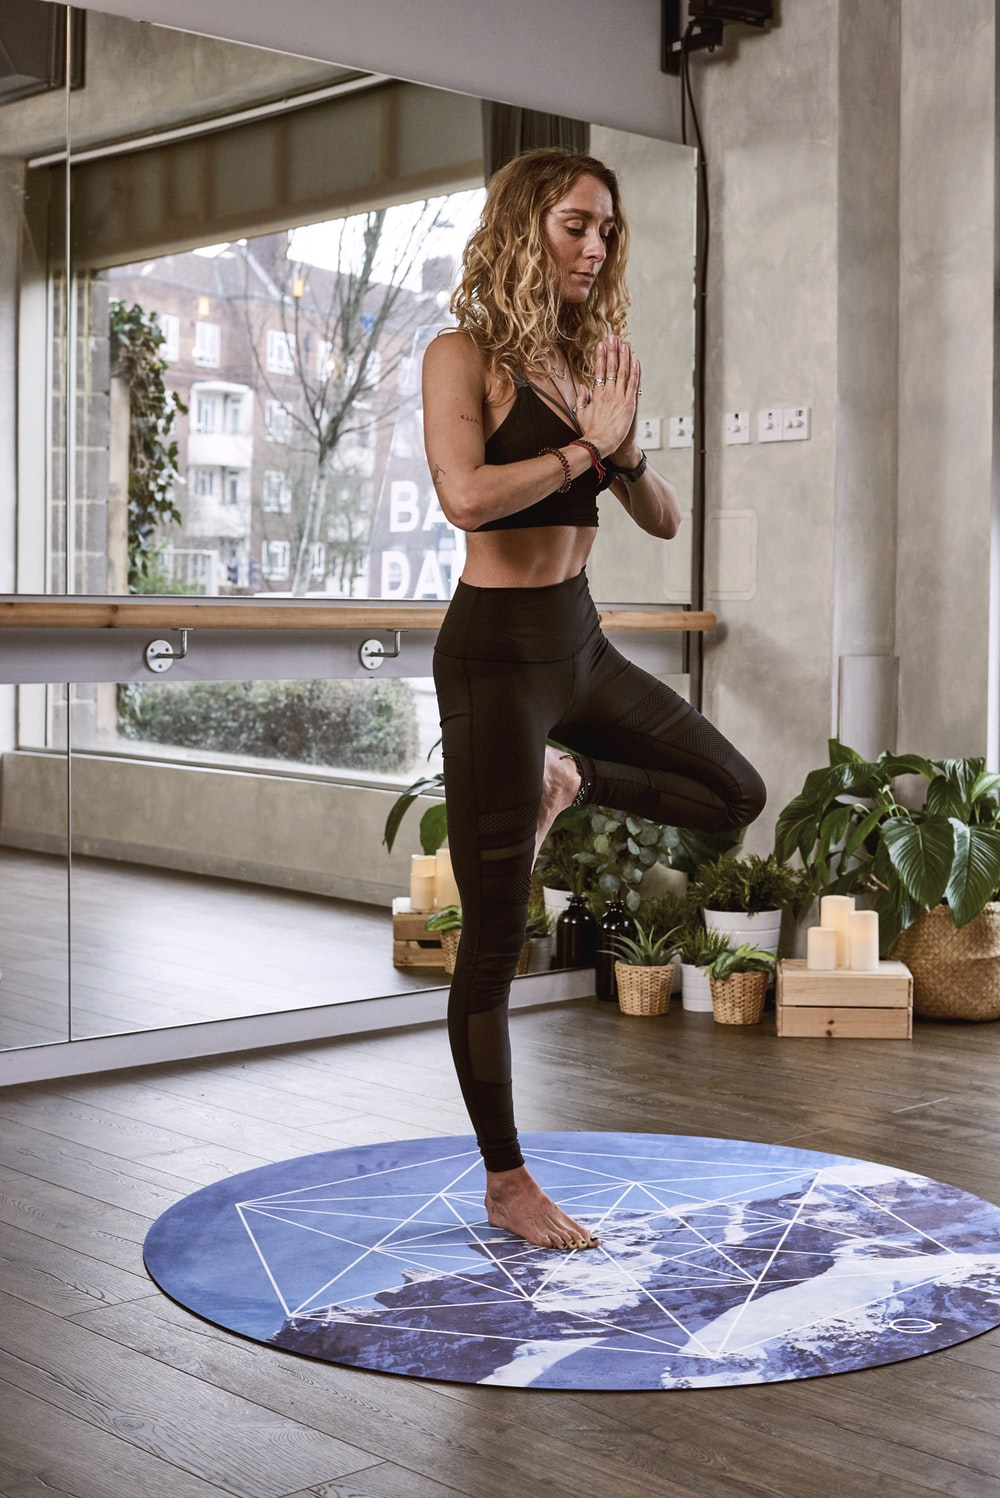 Best Moves Pilate Classes: Know The 5 Best